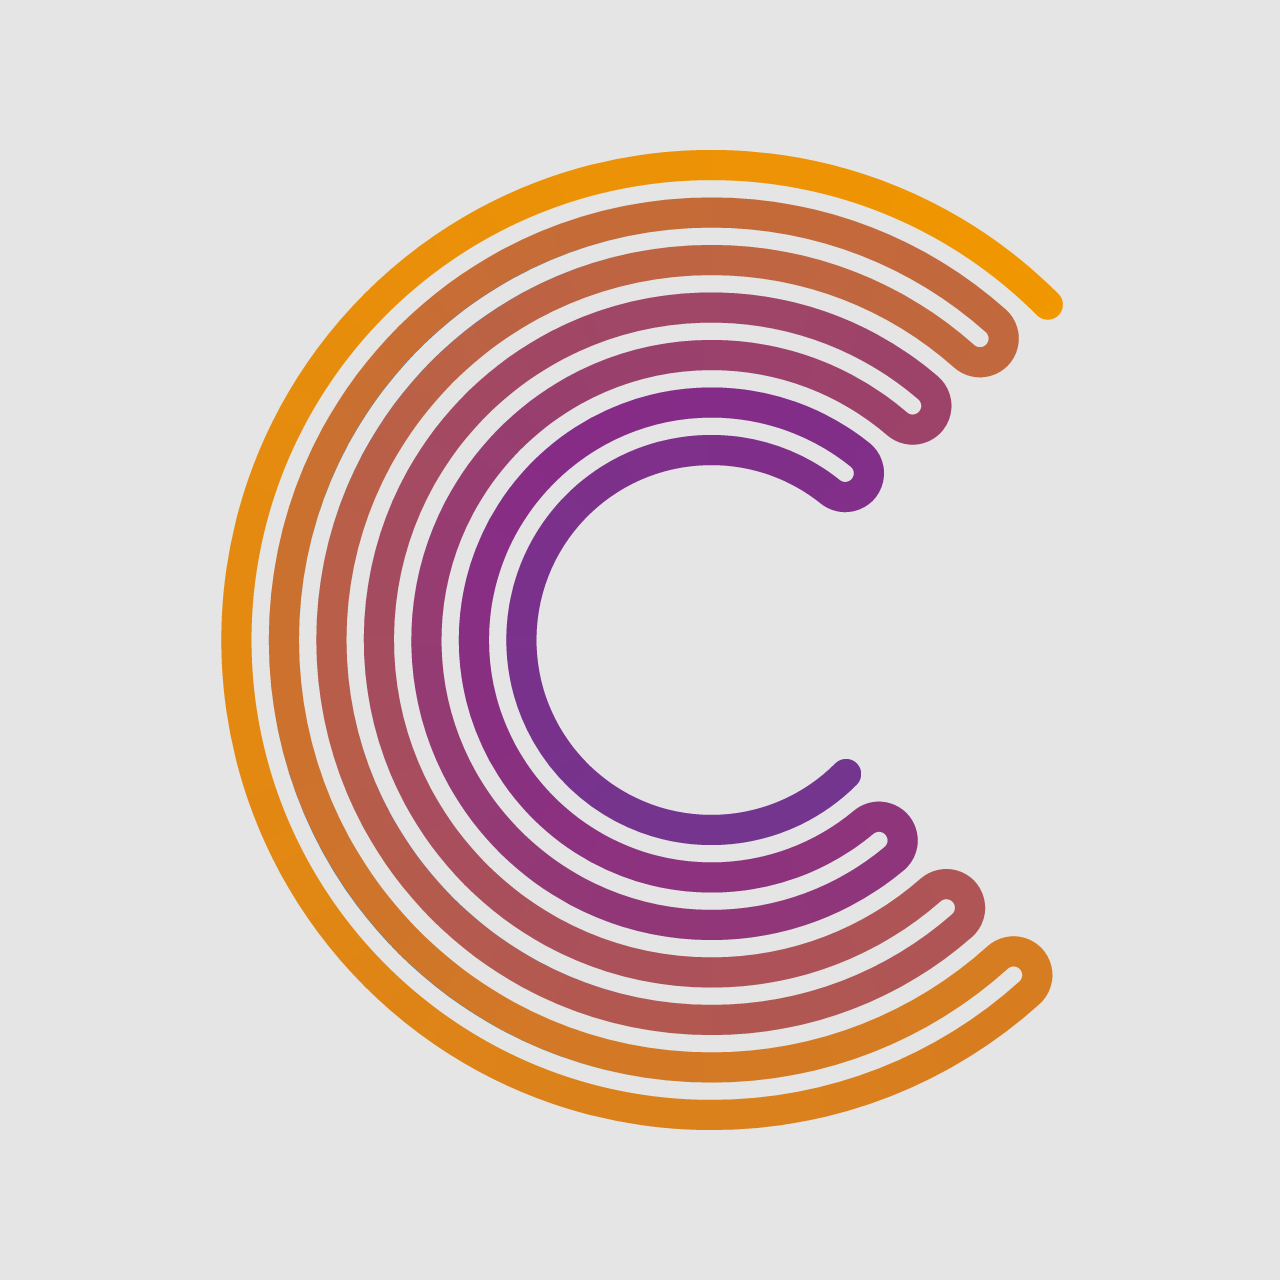 My C submission for 36 Days of Type